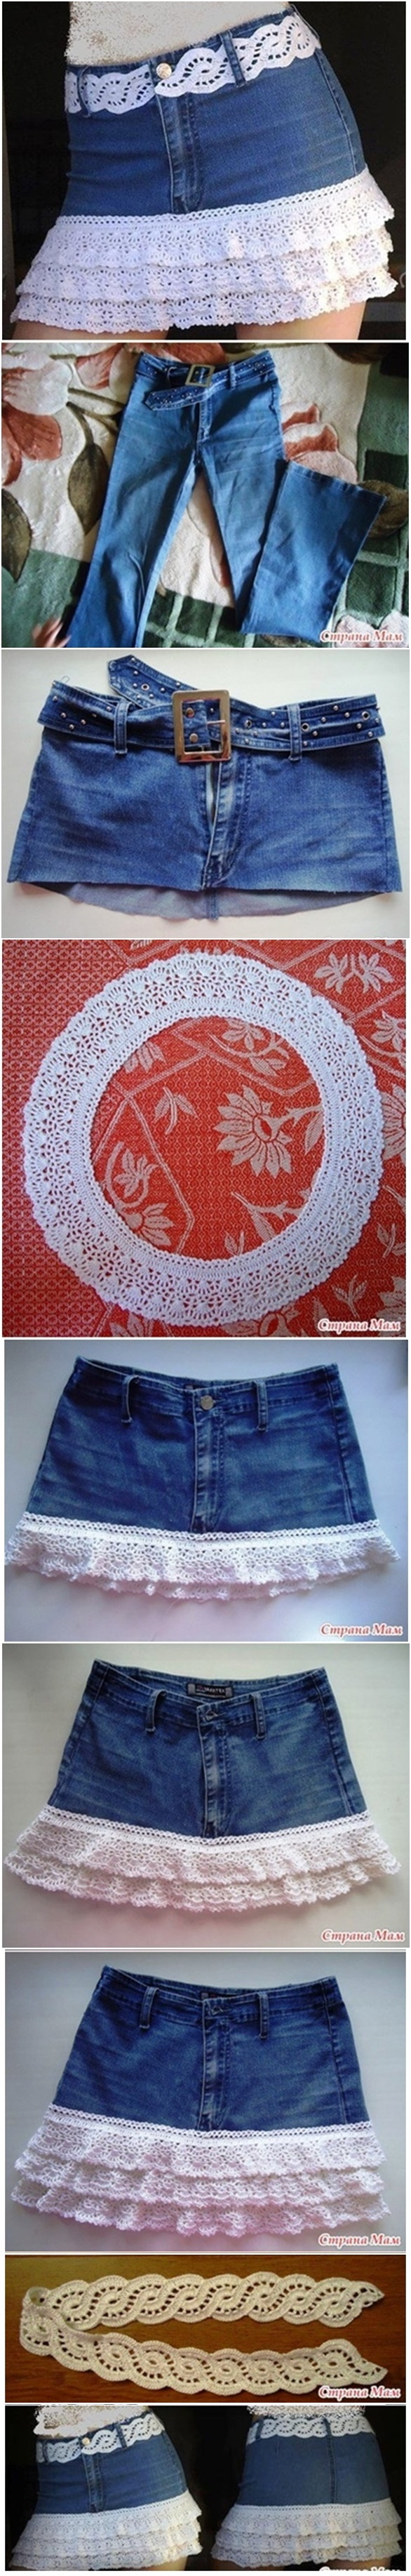 How to DIY Lace layered Skirt from Old Jean